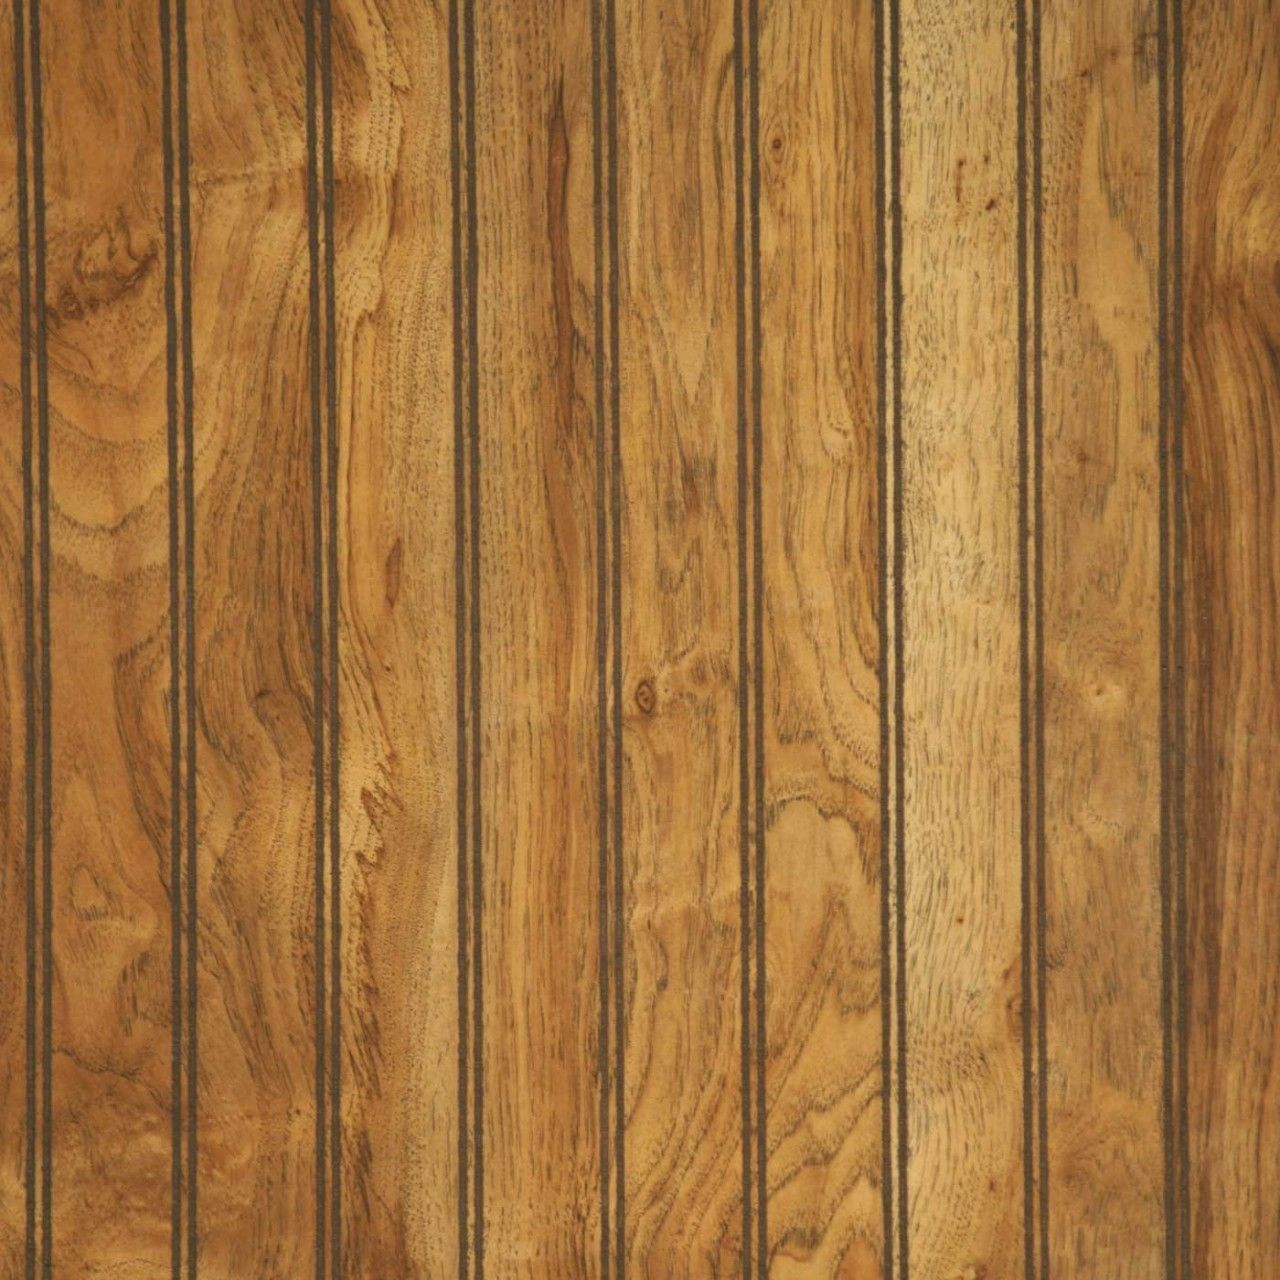 3 16 Natchez Pecan Plywood Beadboard Paneling 4 X 8 Wainscoting Panels Wainscoting Wood Paneling